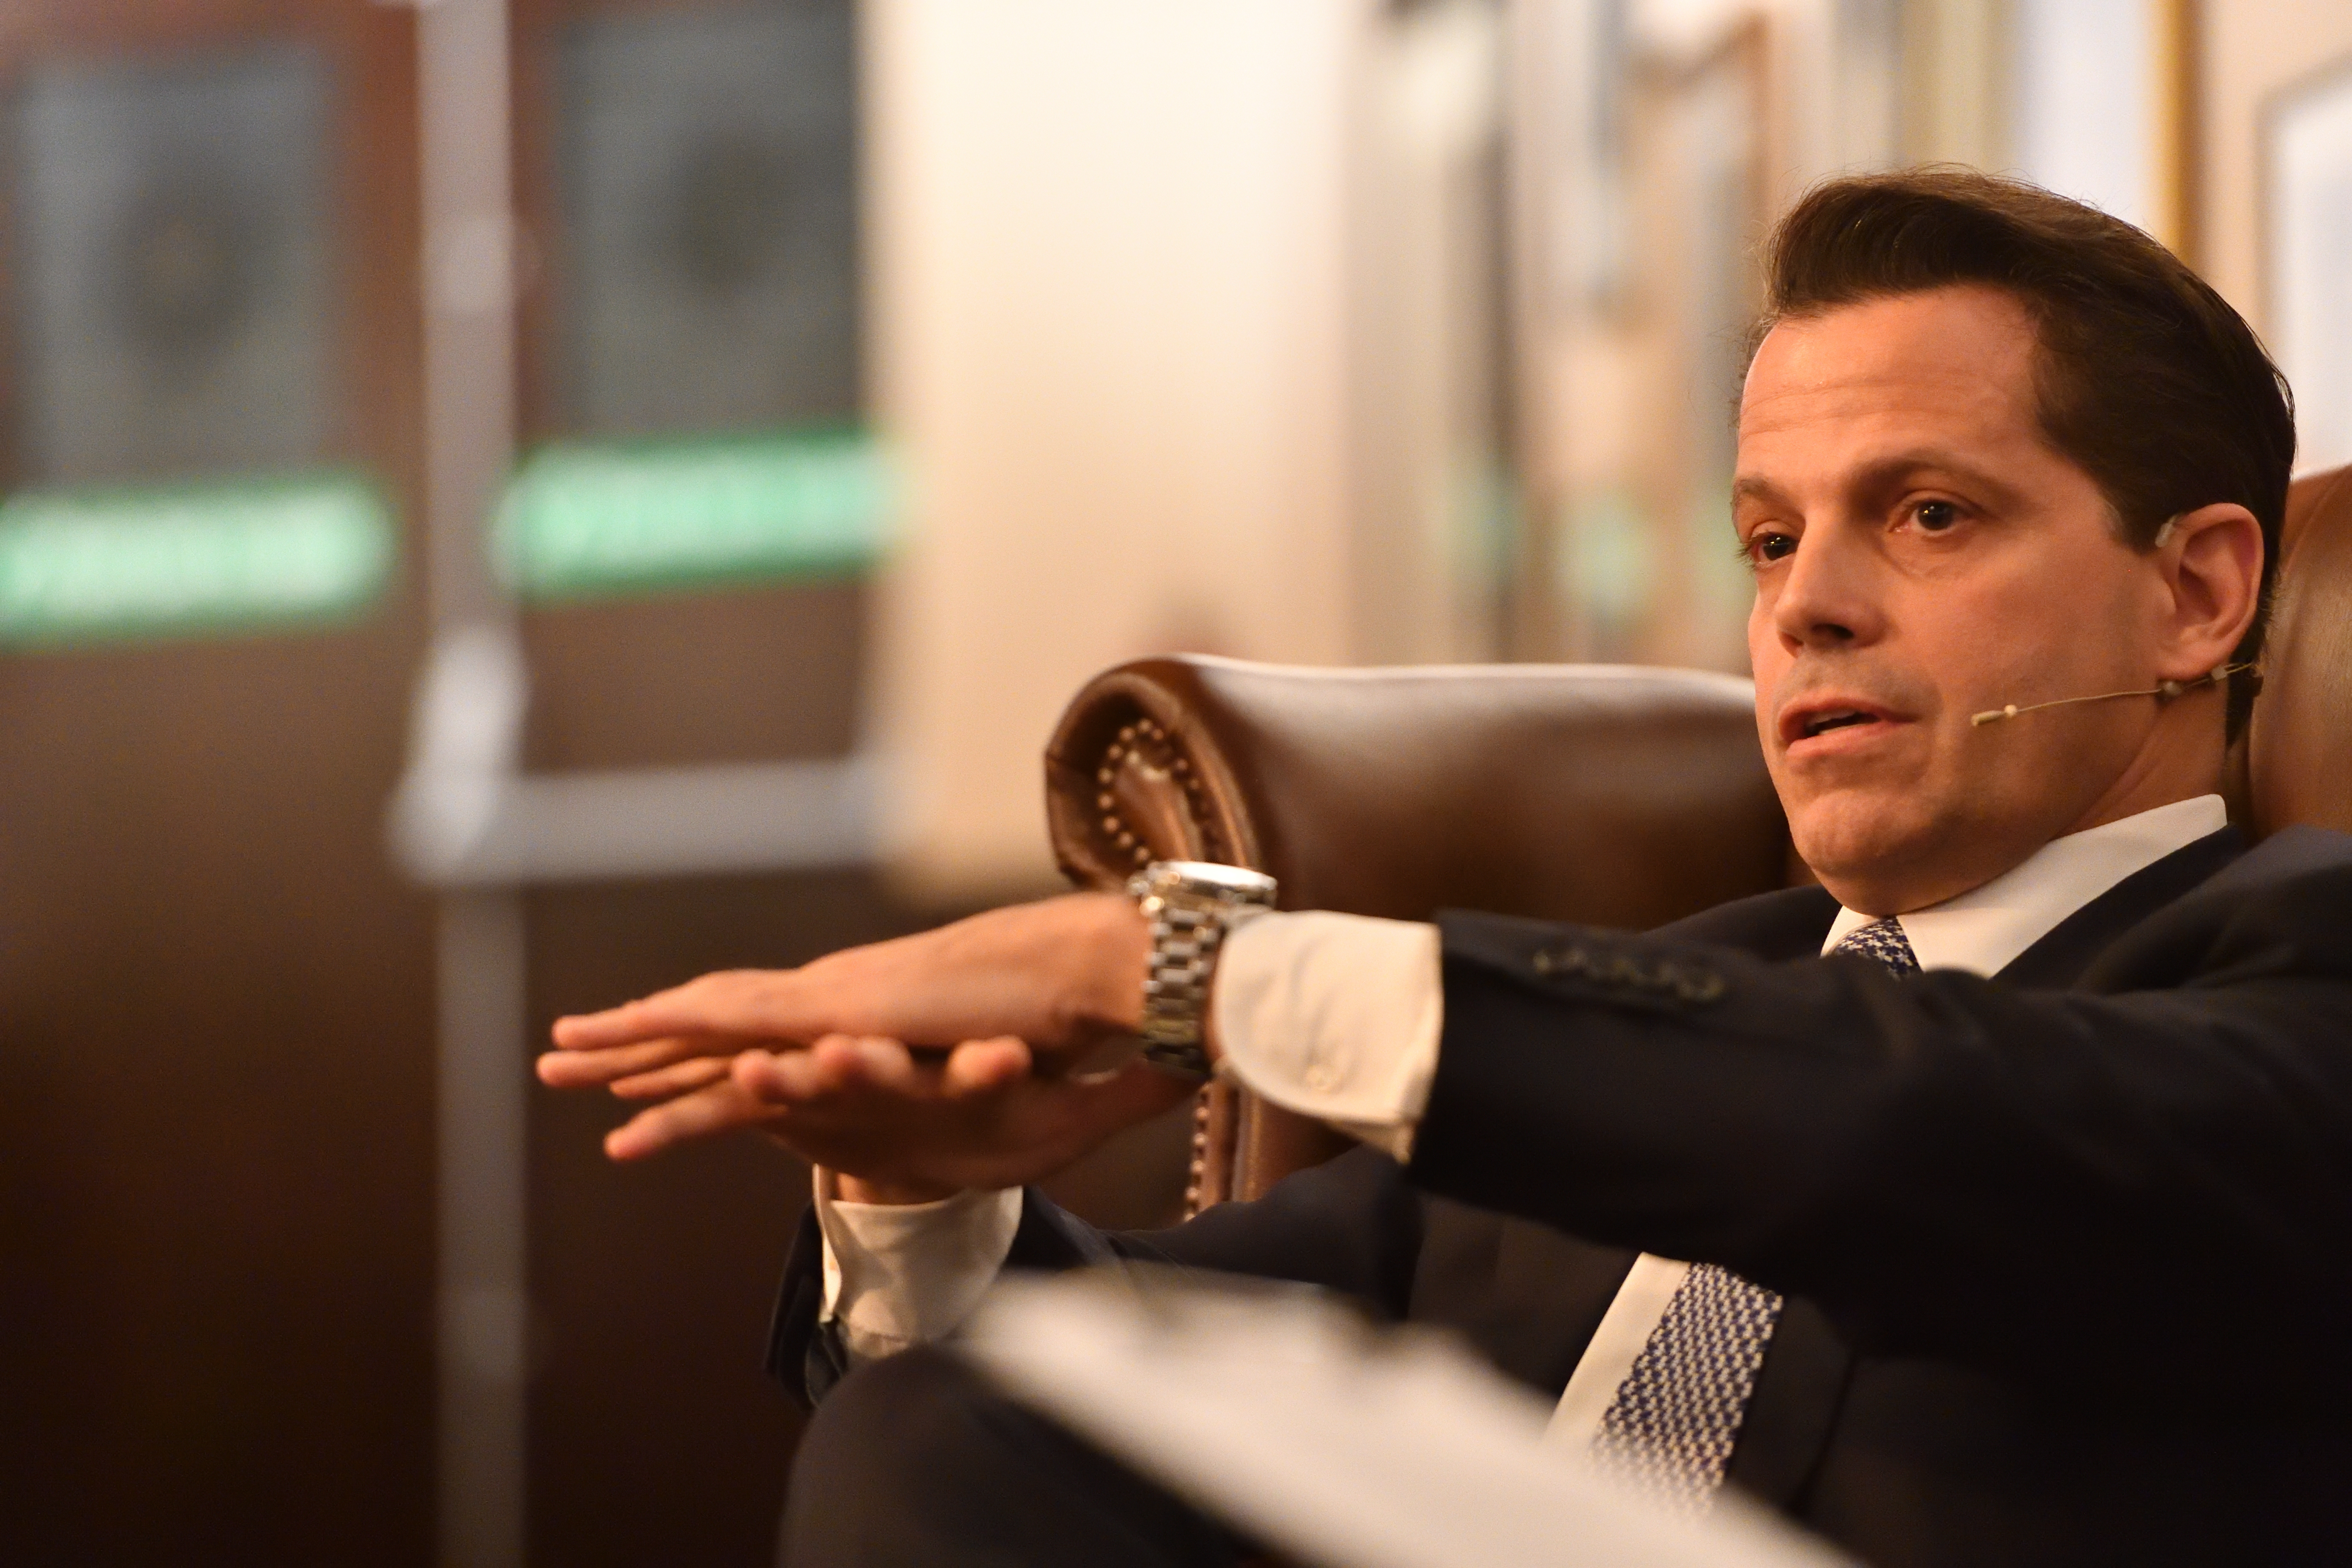 Anthony Scaramucci extends his hands while seated at the Cambridge Union